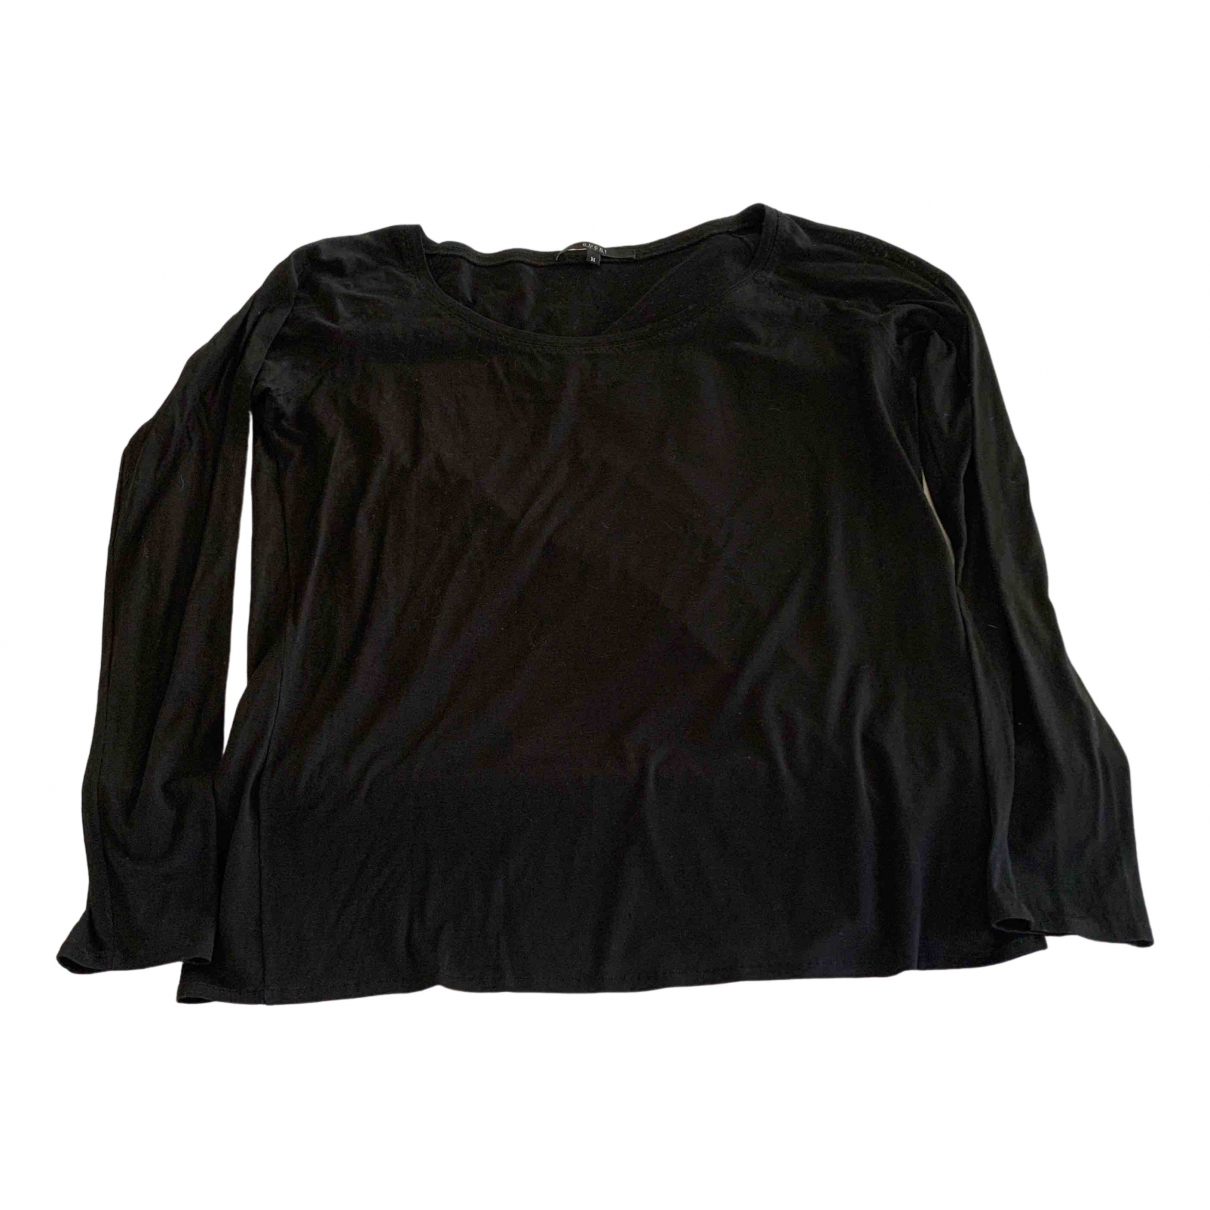 Gucci \N Black Cotton  top for Women M International